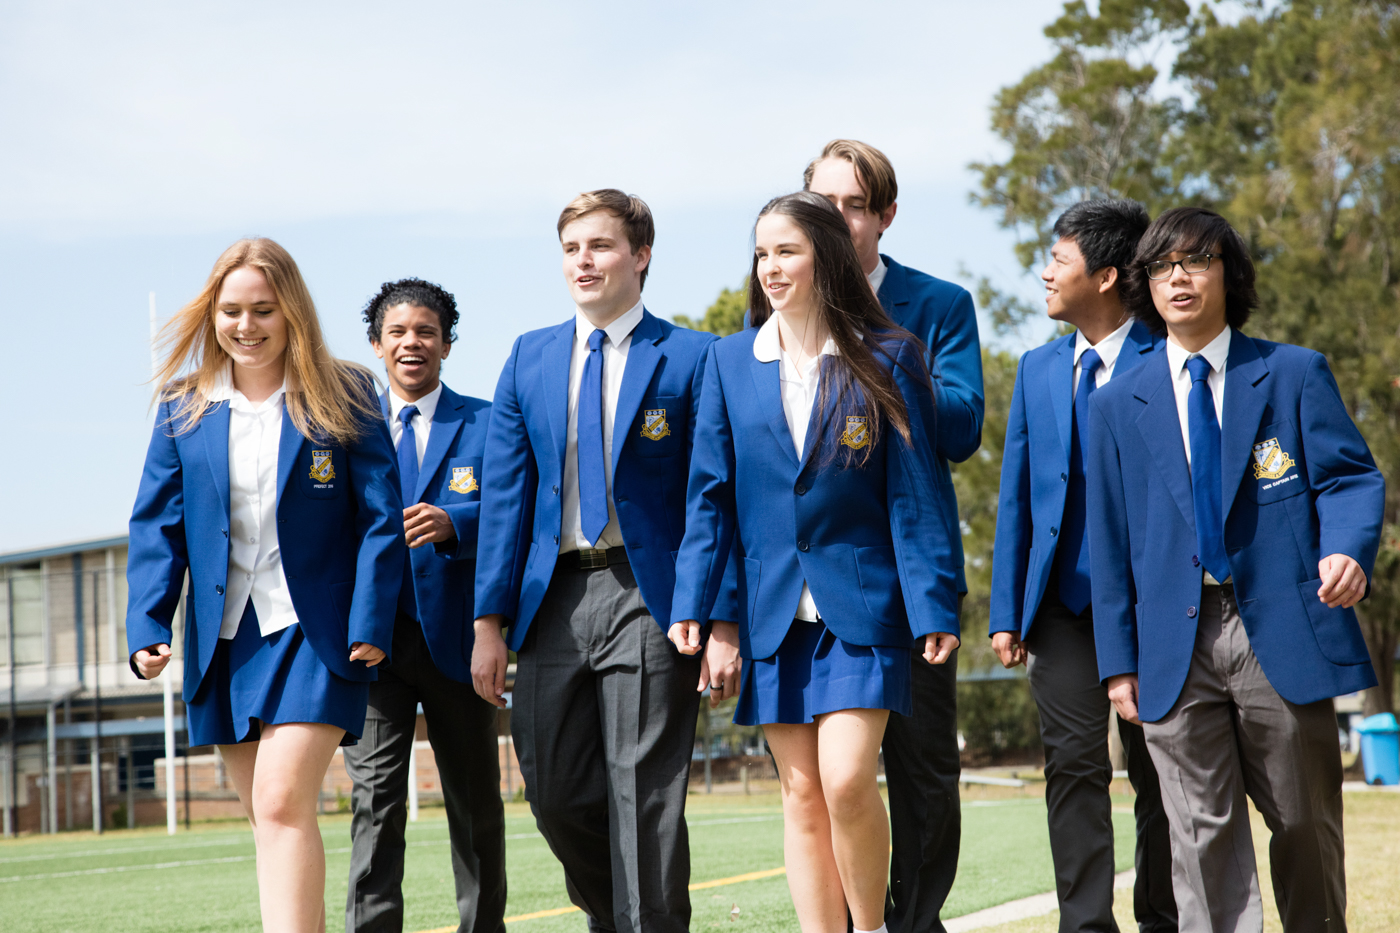 - School photography can range from lifestyle images/school uniforms, school concert/performances and school formals. As a father of 3 school age kids I feel very comfortable working with the schools and really enjoy the kids energy and spark, it always makes for great images.